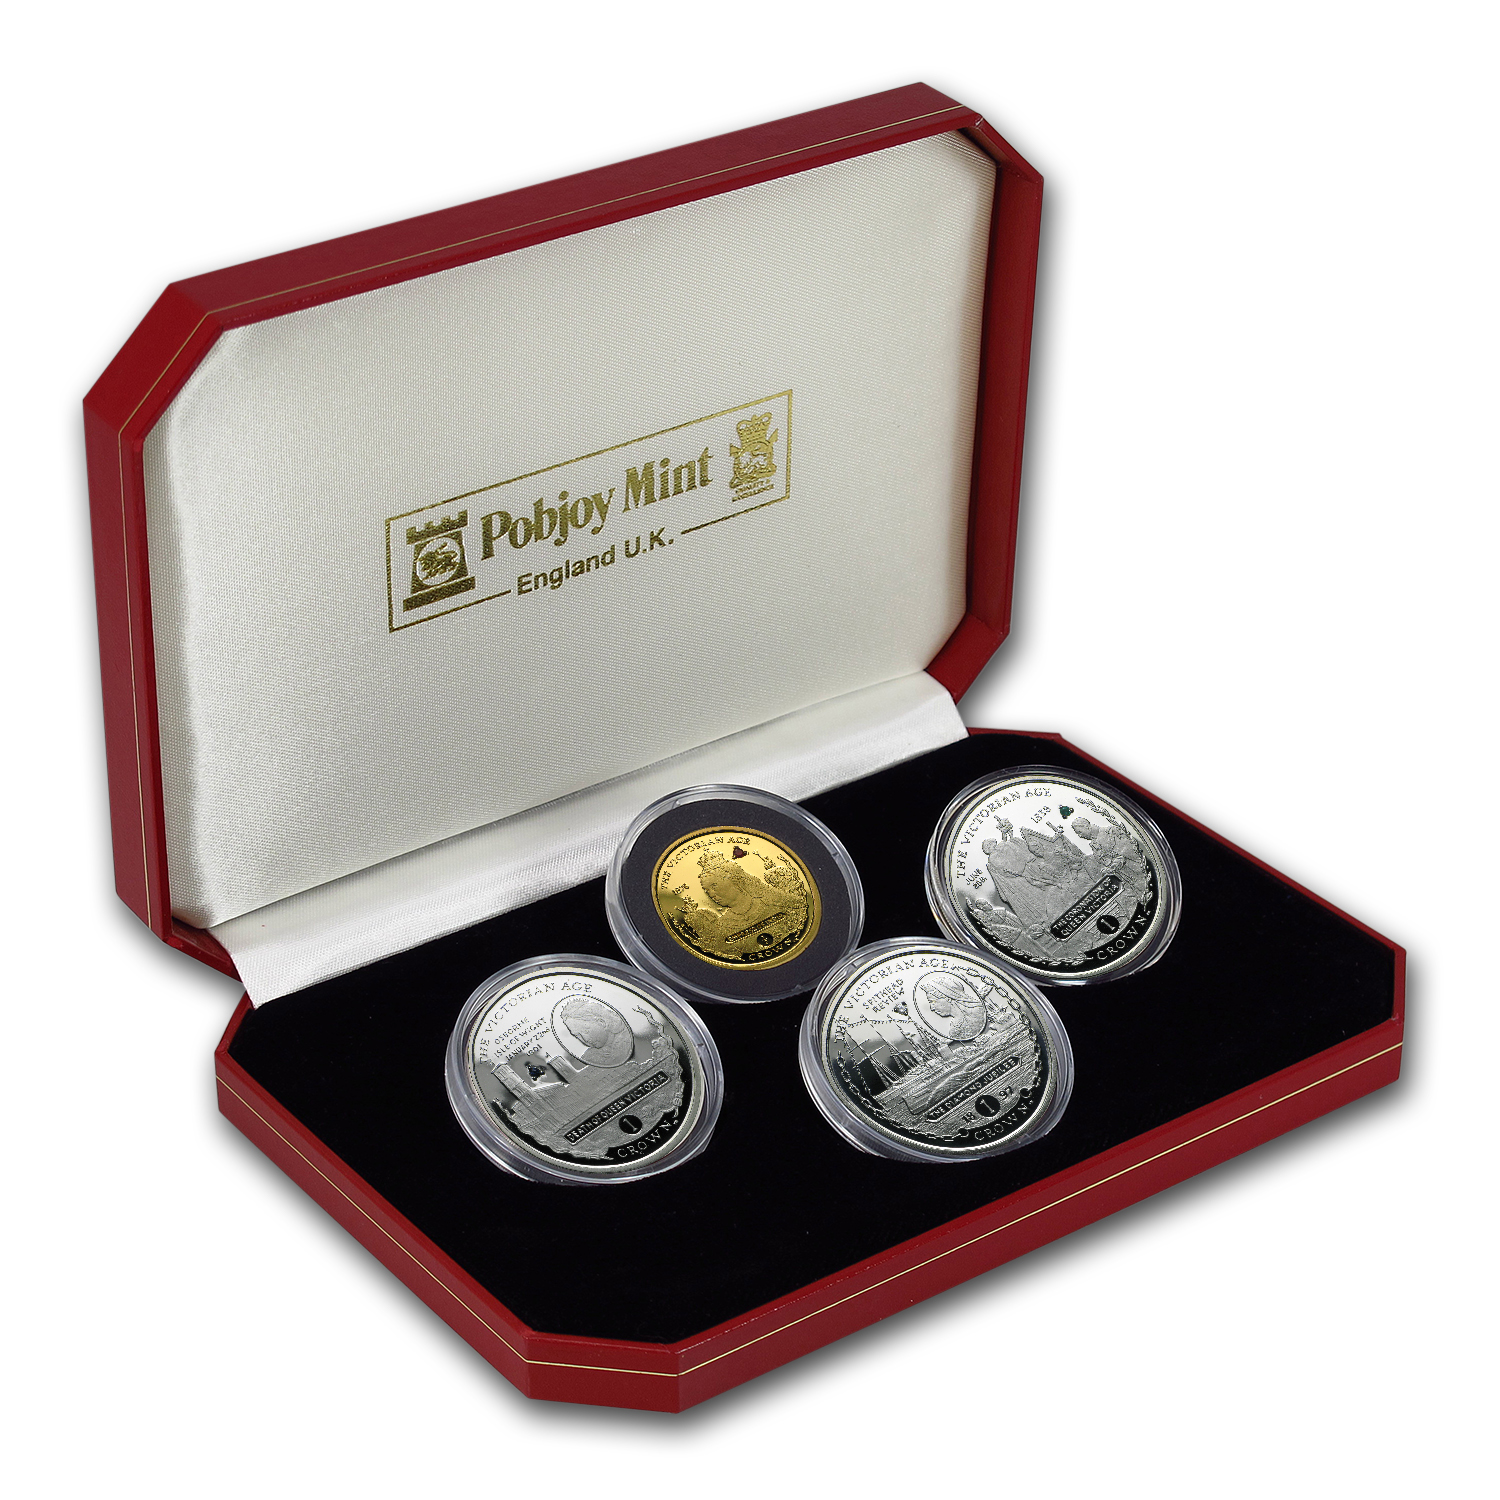 2001 Gibraltar 4-Coin Gold/Silver Victorian Age Proof Set